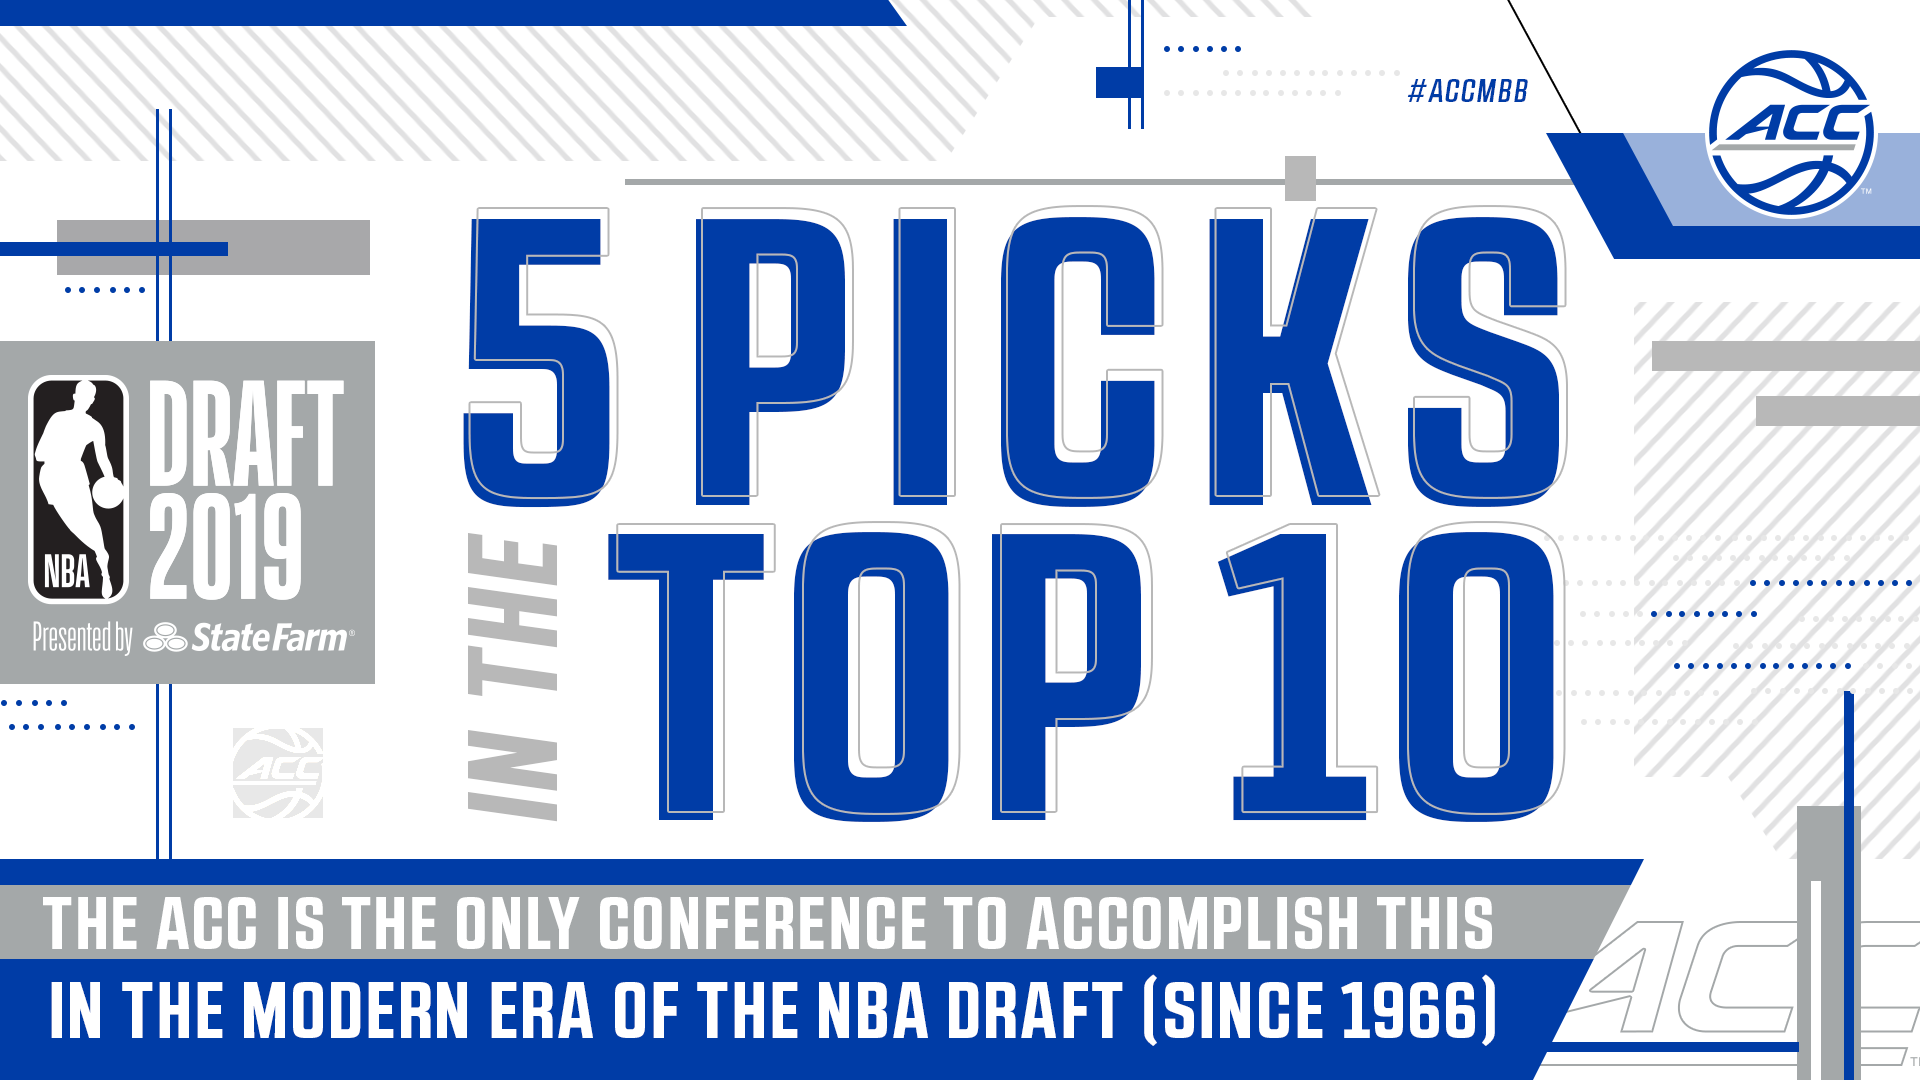 ACC sets record with six lottery picks in 2019 NBA Draft